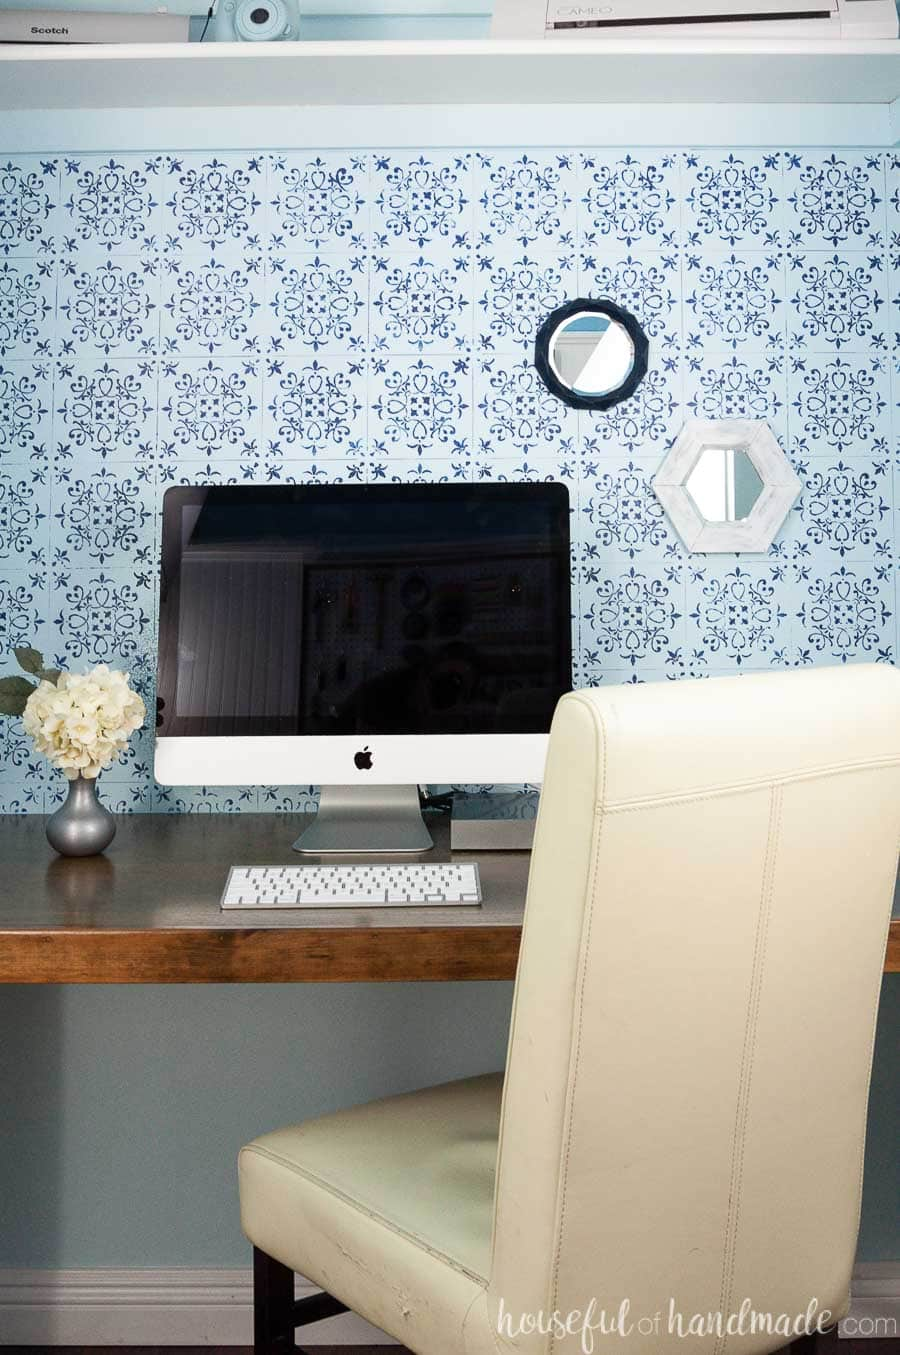 Closet desk area decorated with small wall mirrors made out of paper.